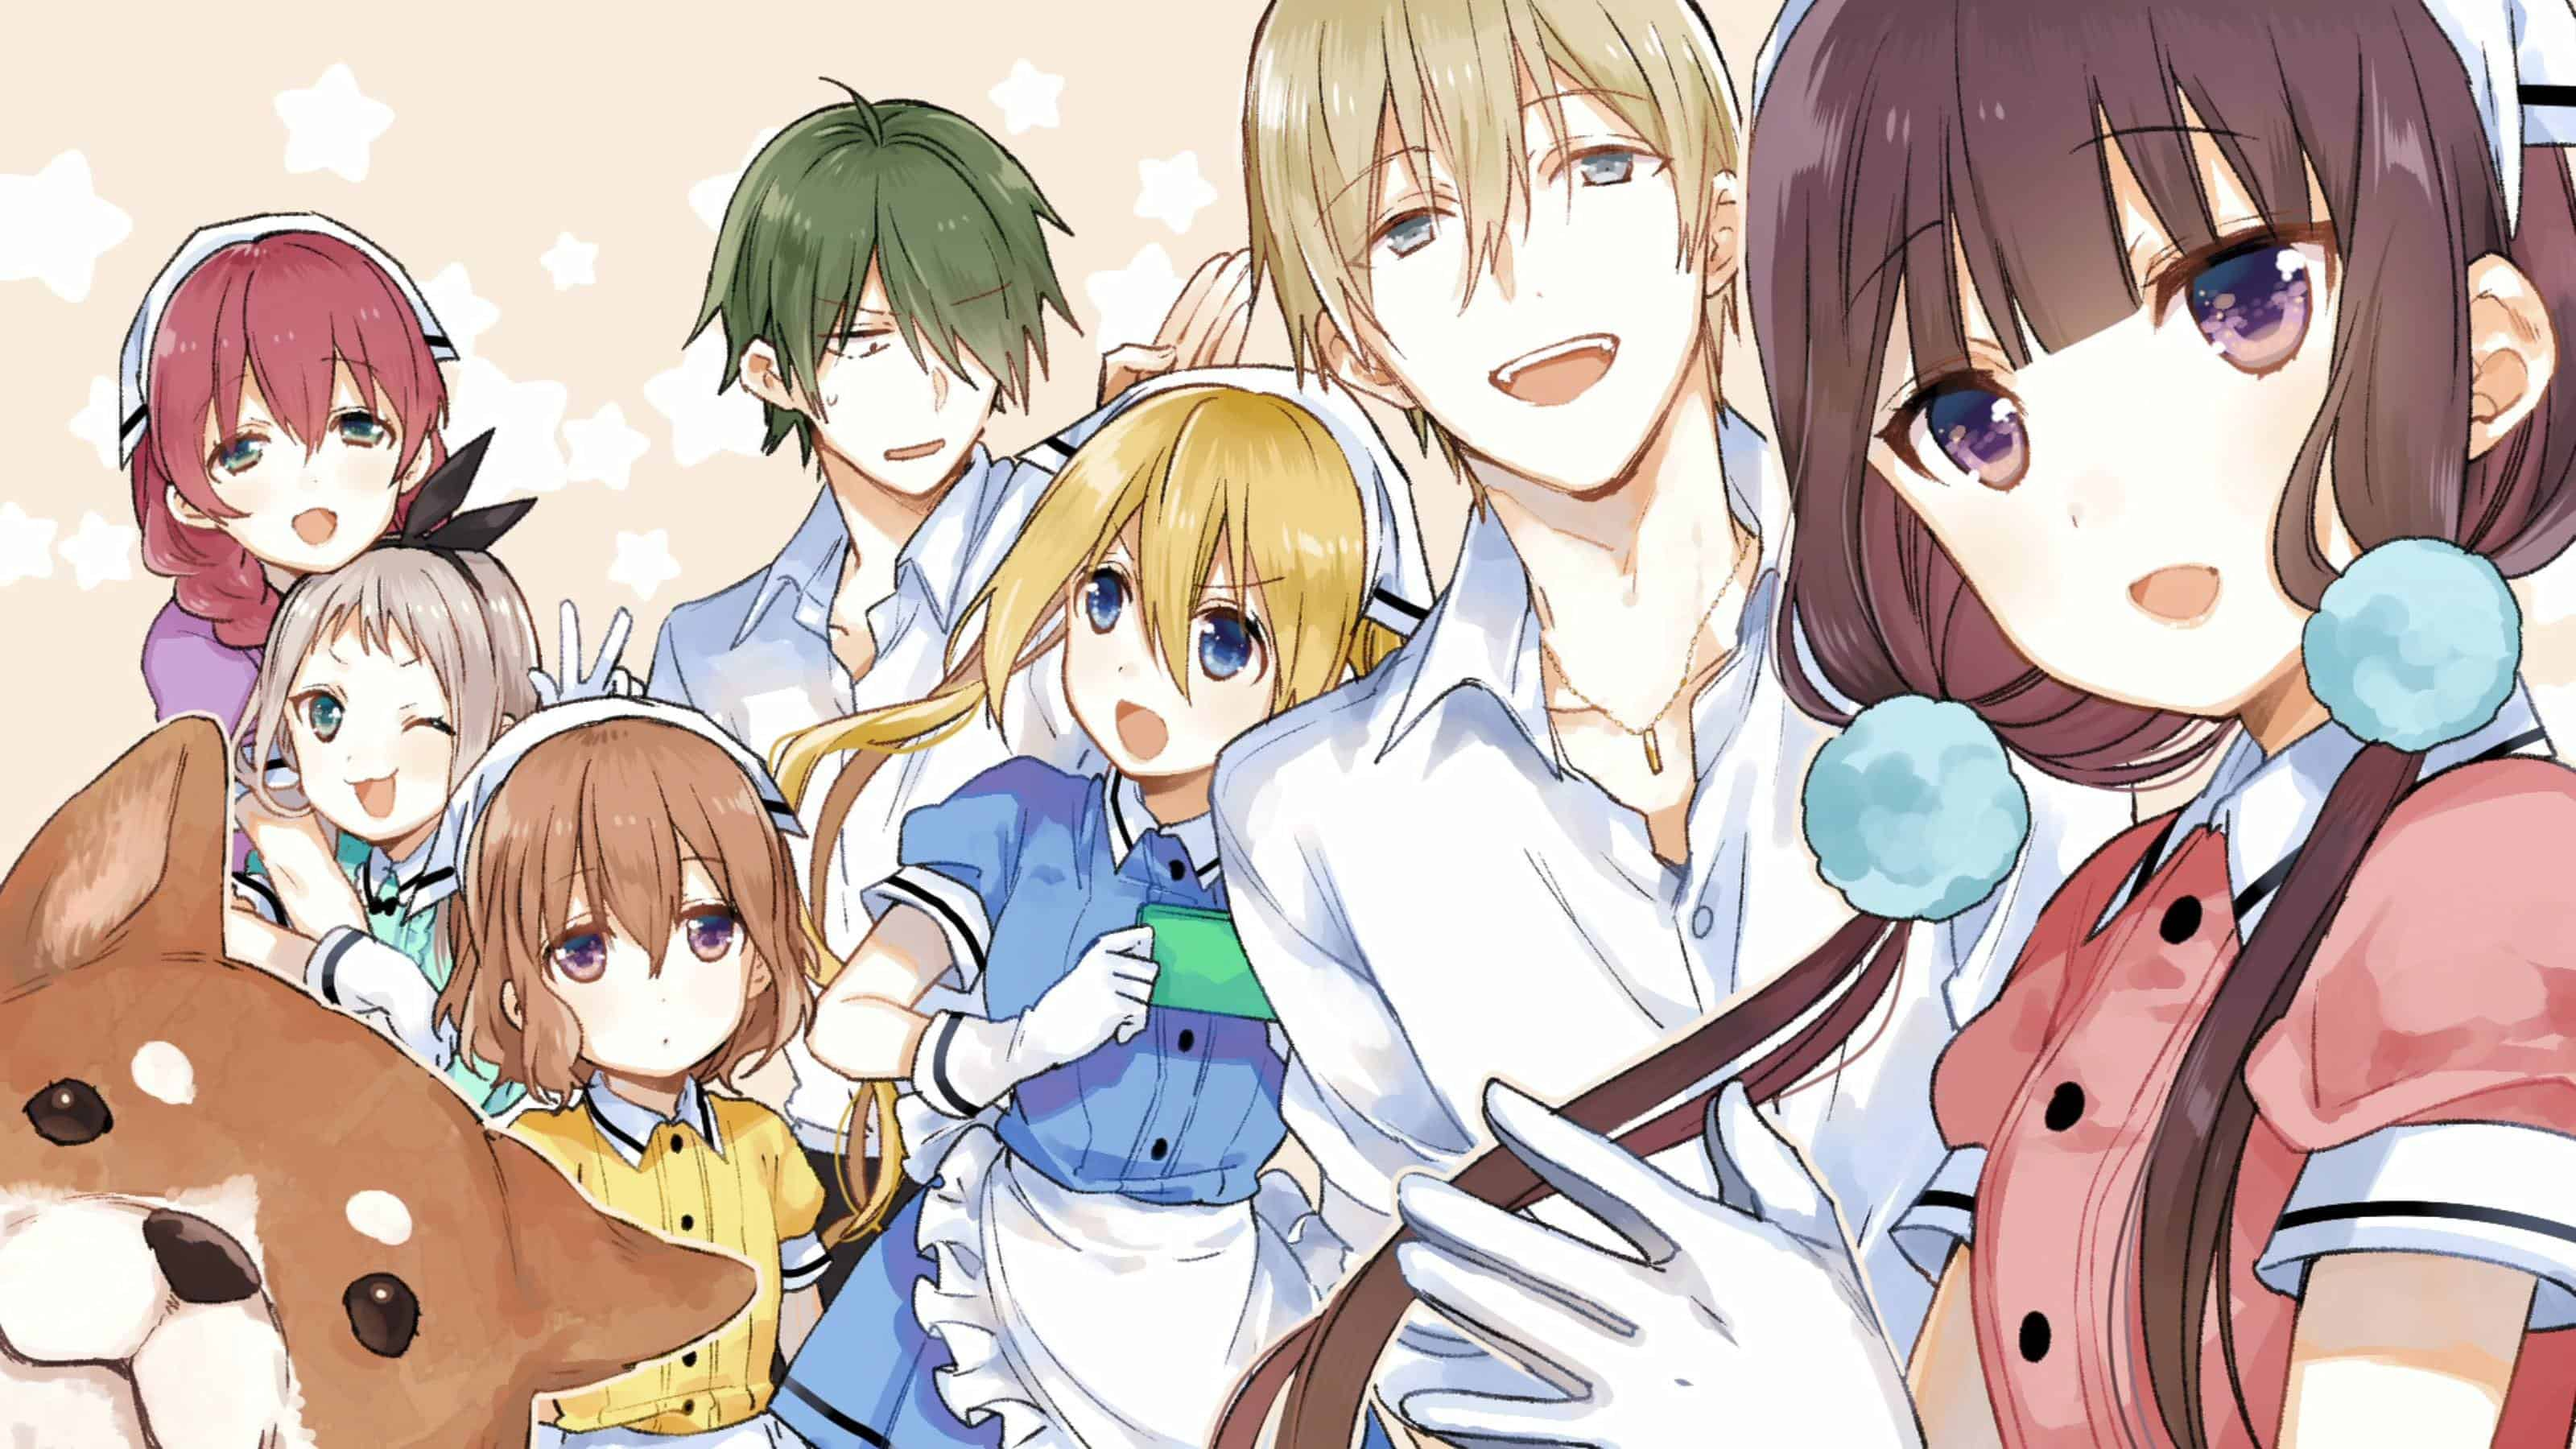 Blend S Season 2: Release Date, Cast and Expetations from S2!